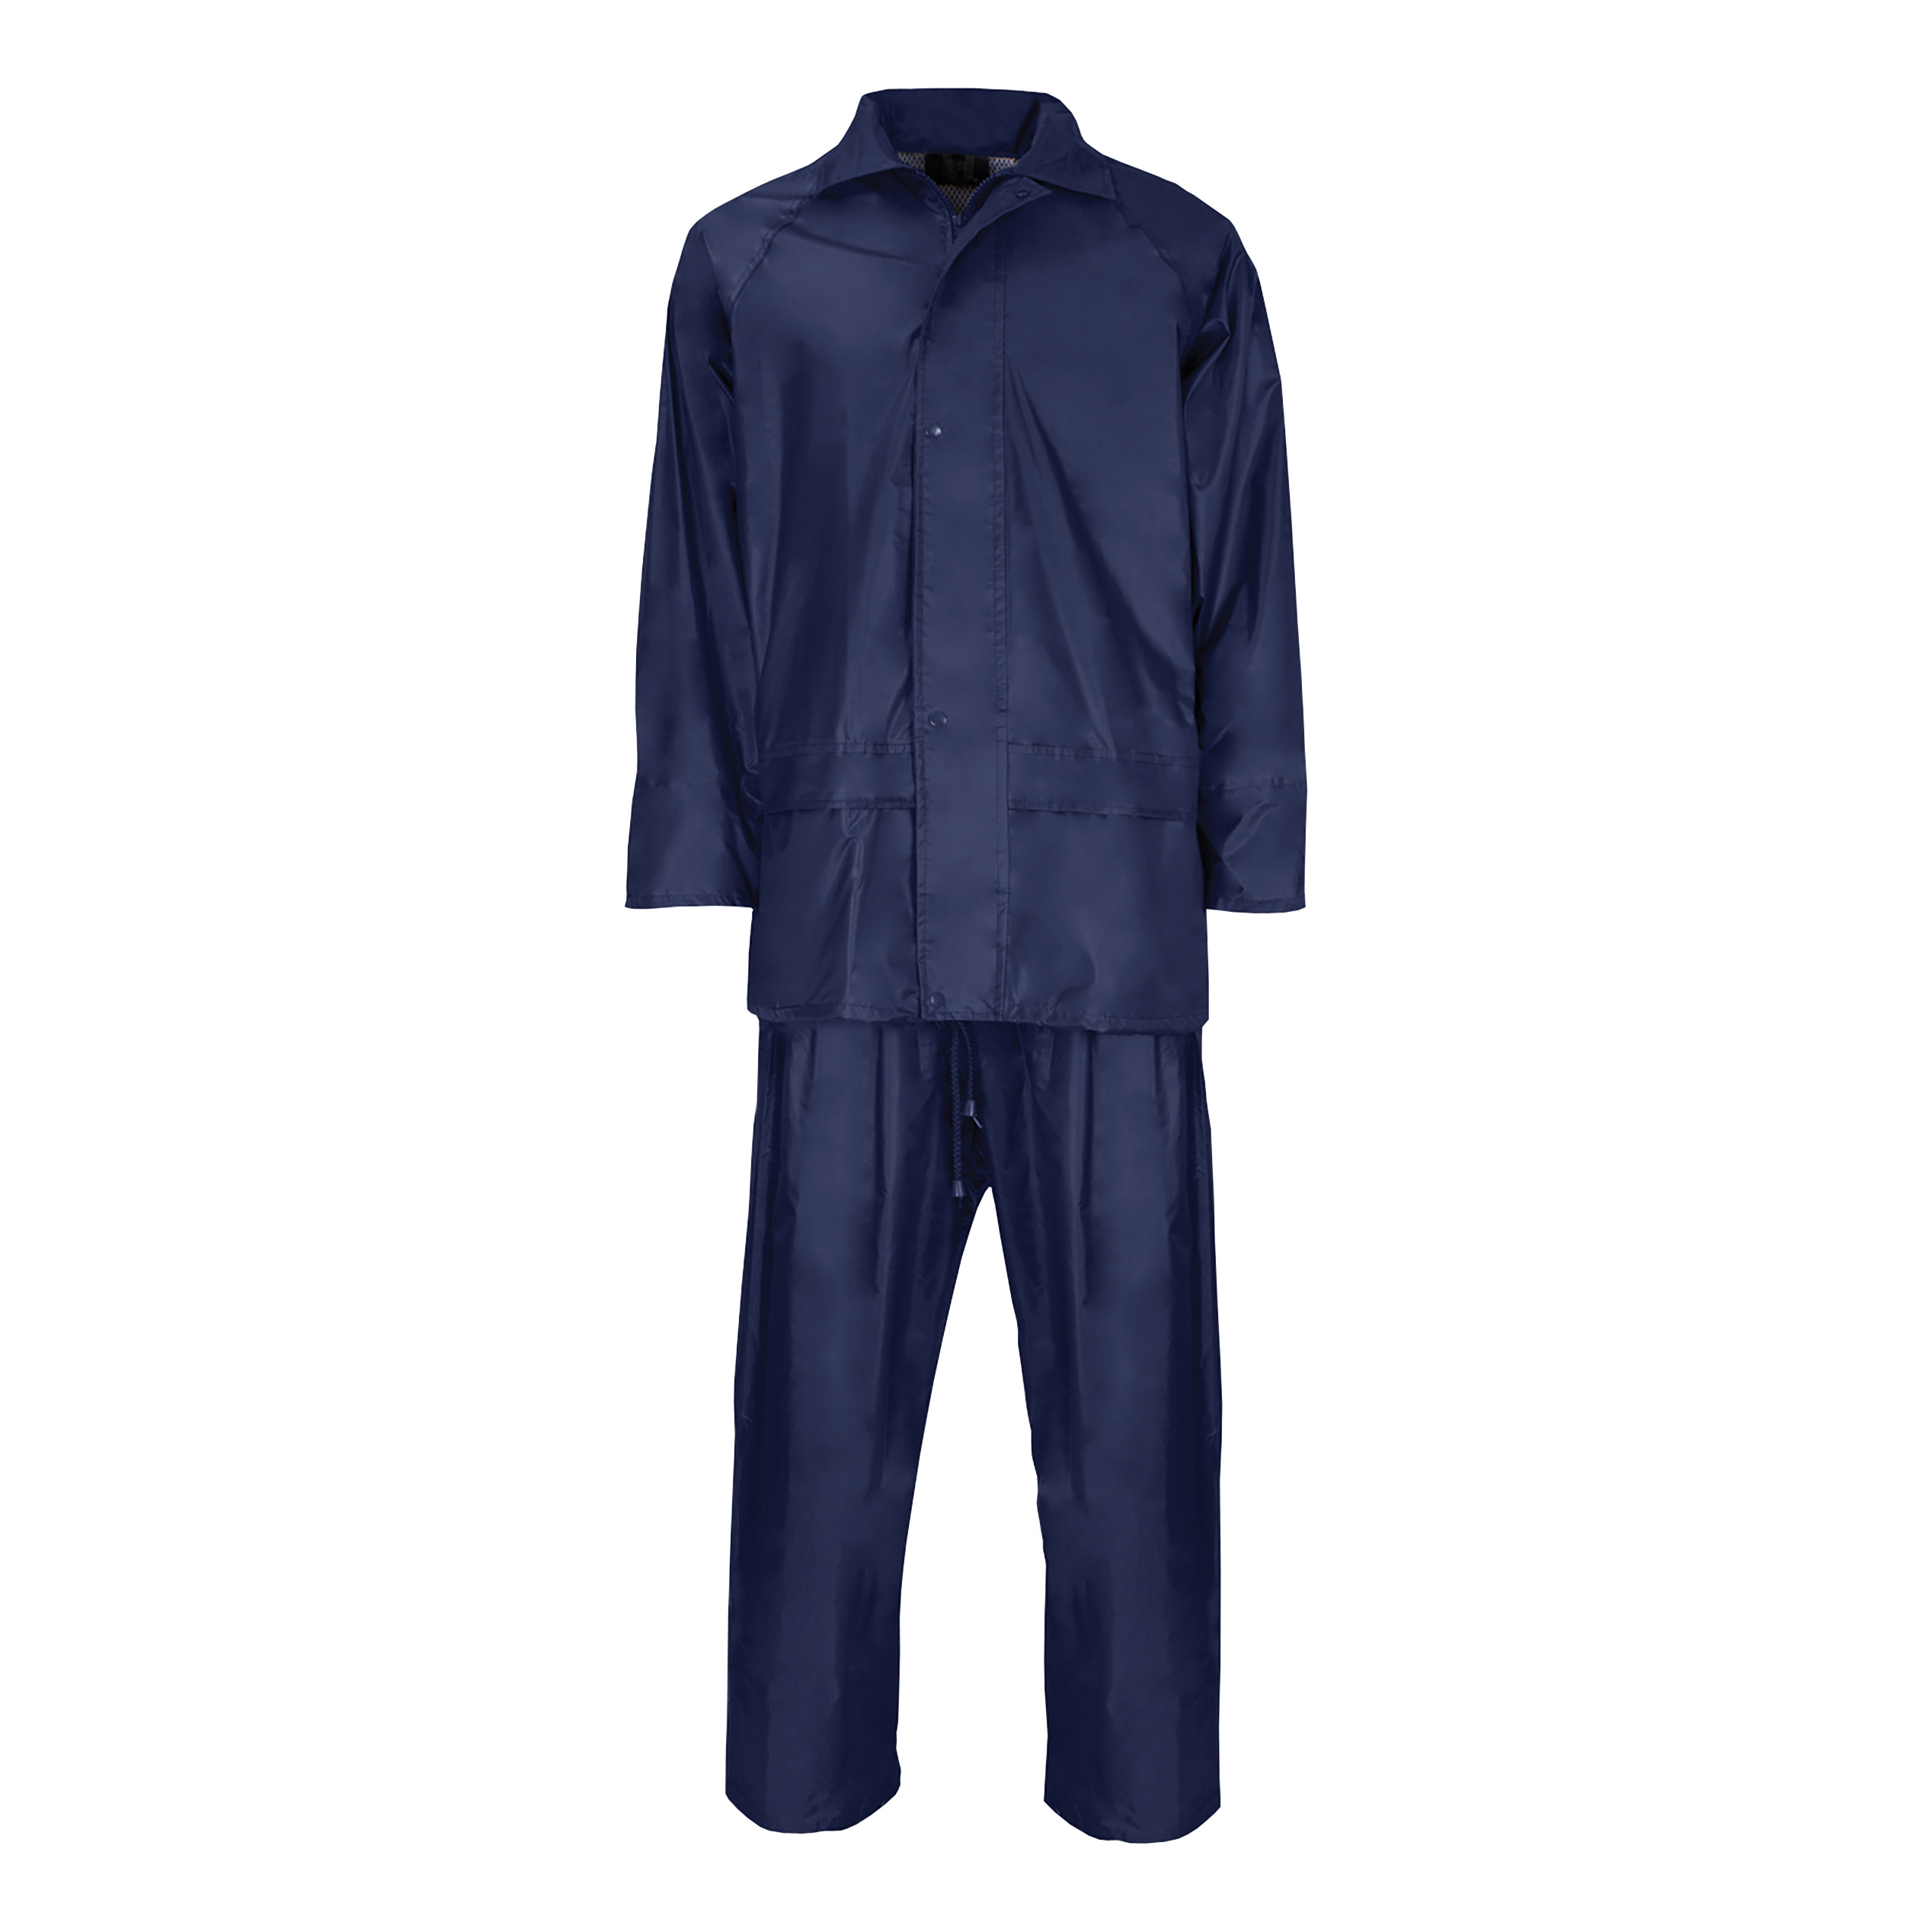 Rainsuit Polyester/PVC with Elasticated Waisted Trousers Large Navy Ref NBDSNL *Approx 3 Day Leadtime*